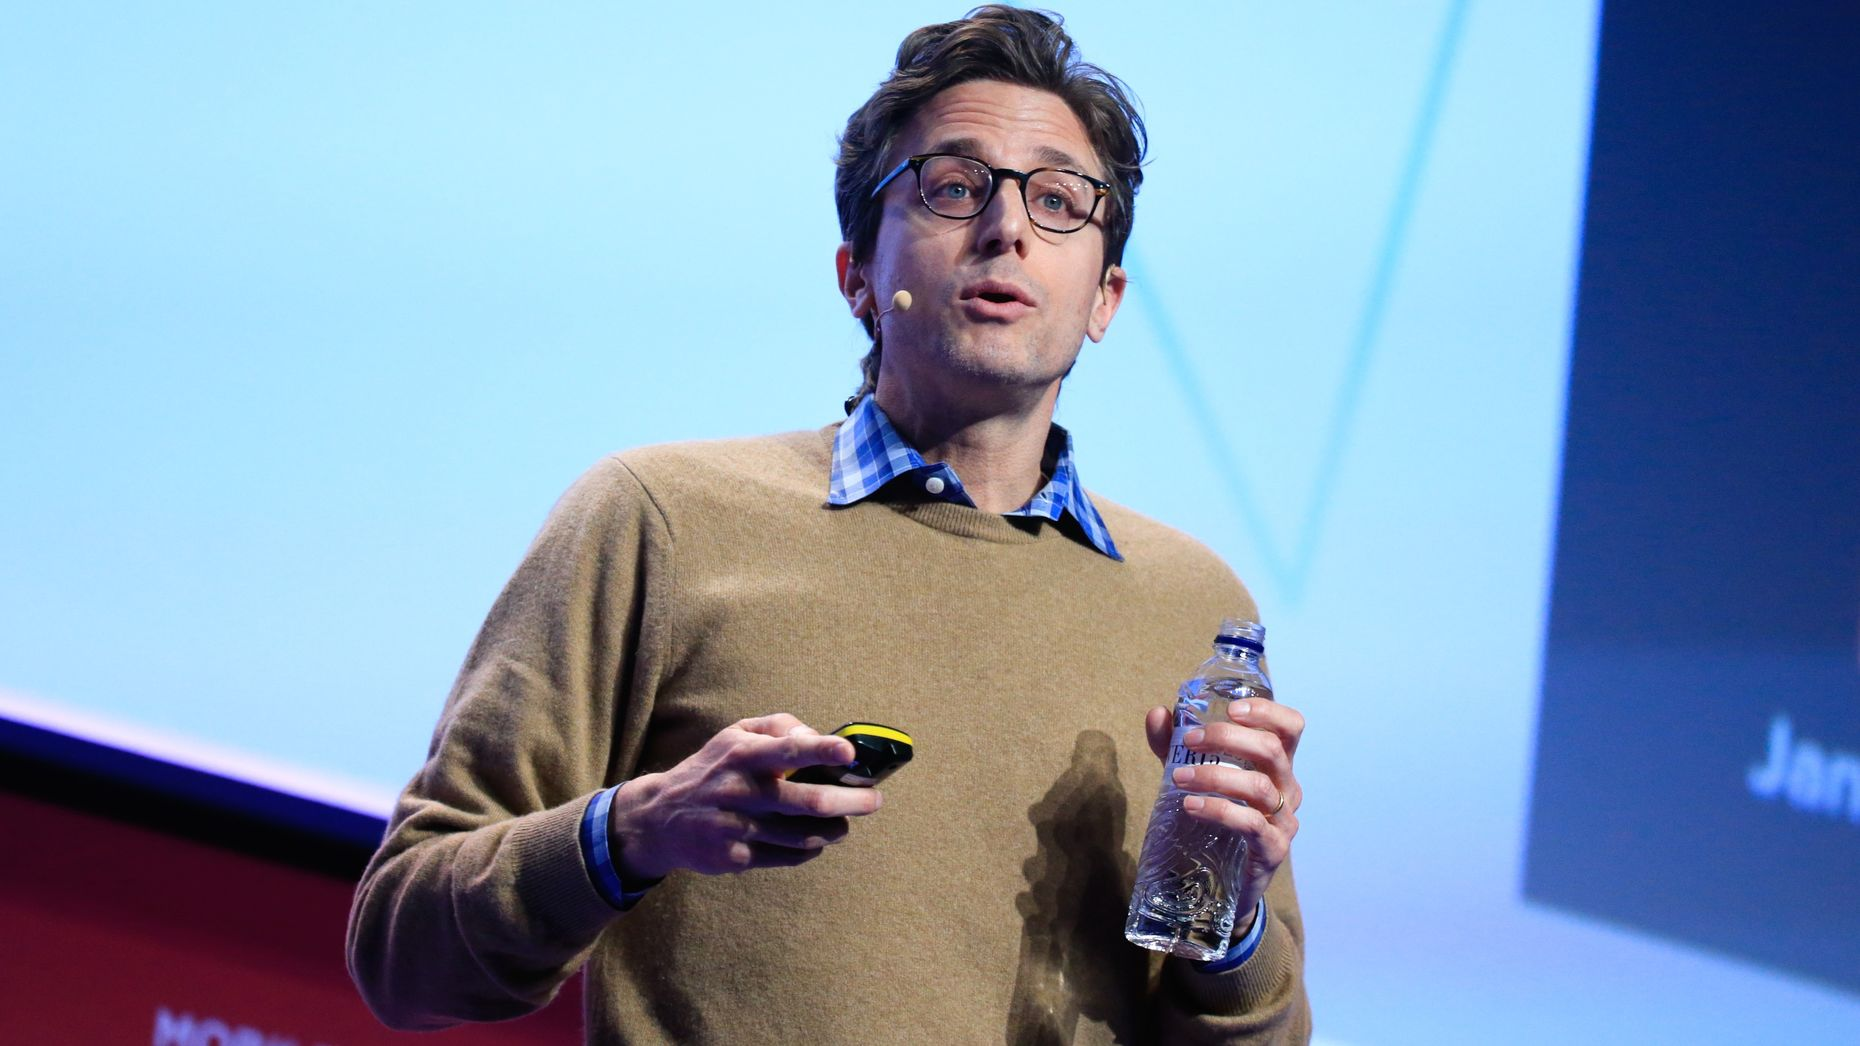 BuzzFeed CEO Jonah Peretti. Photo by Bloomberg.